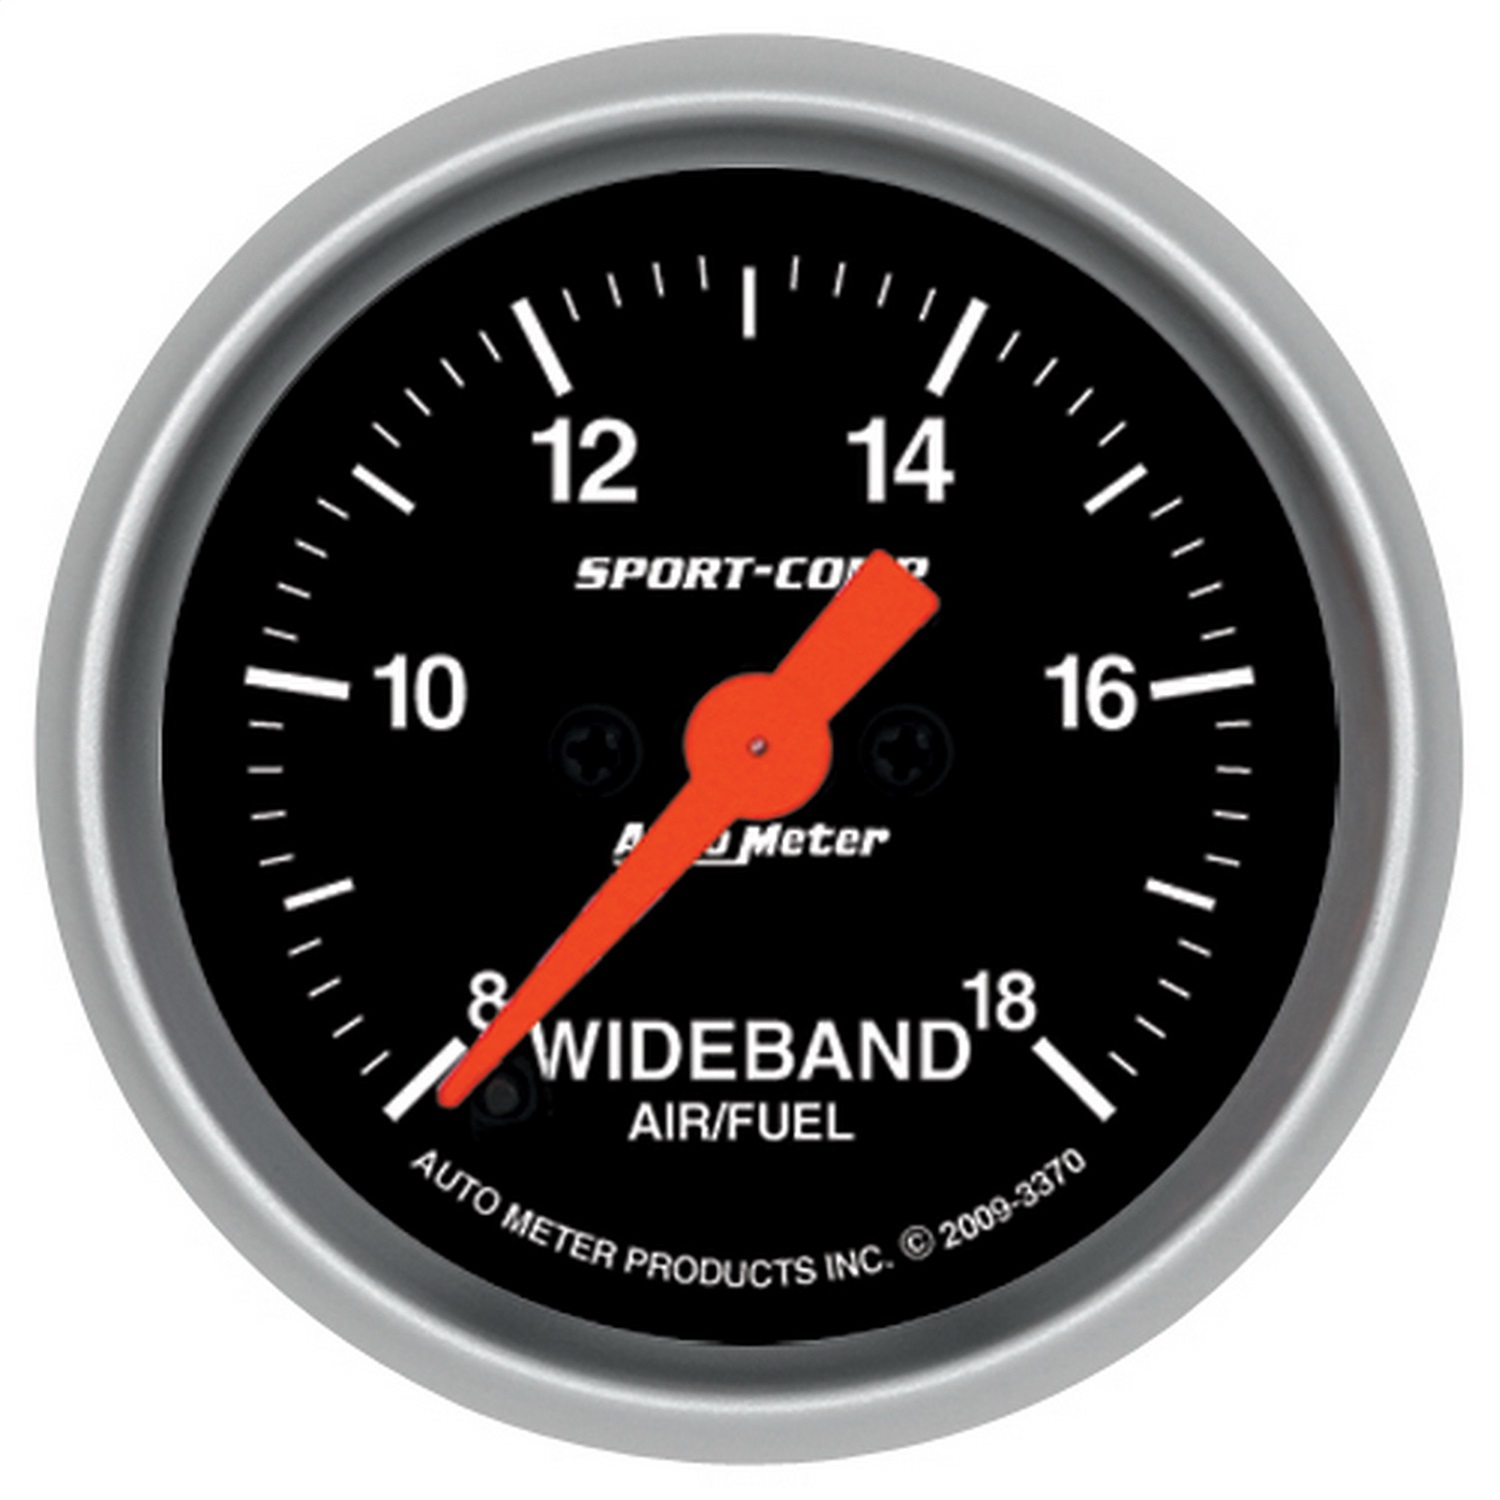 AutoMeter 3370 Sport-Comp Wide Band Air Fuel Ratio Kit; 2-1/16 in.; Black Dial Face; Fluorescent Red Pointer; White Incandescent Lighting; Electric Digital Stepper Motor; 8:1-18:1 AFR;